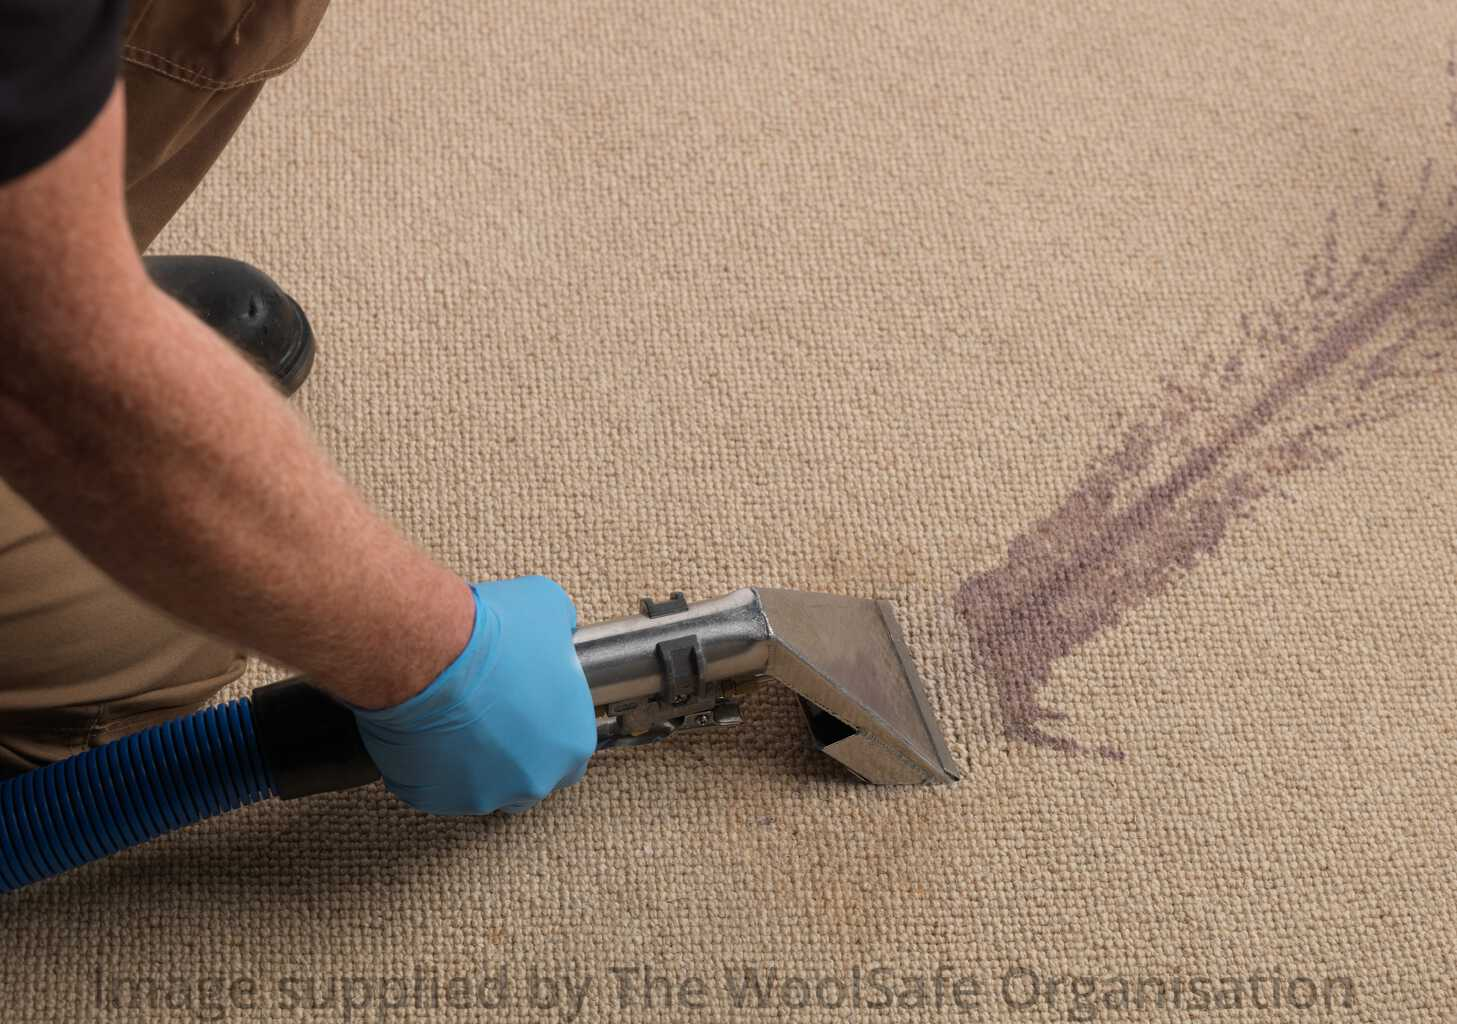 ... course is intended to deliver the most comprehensive and best value for money carpet and upholstery cleaning training available in the UK today.